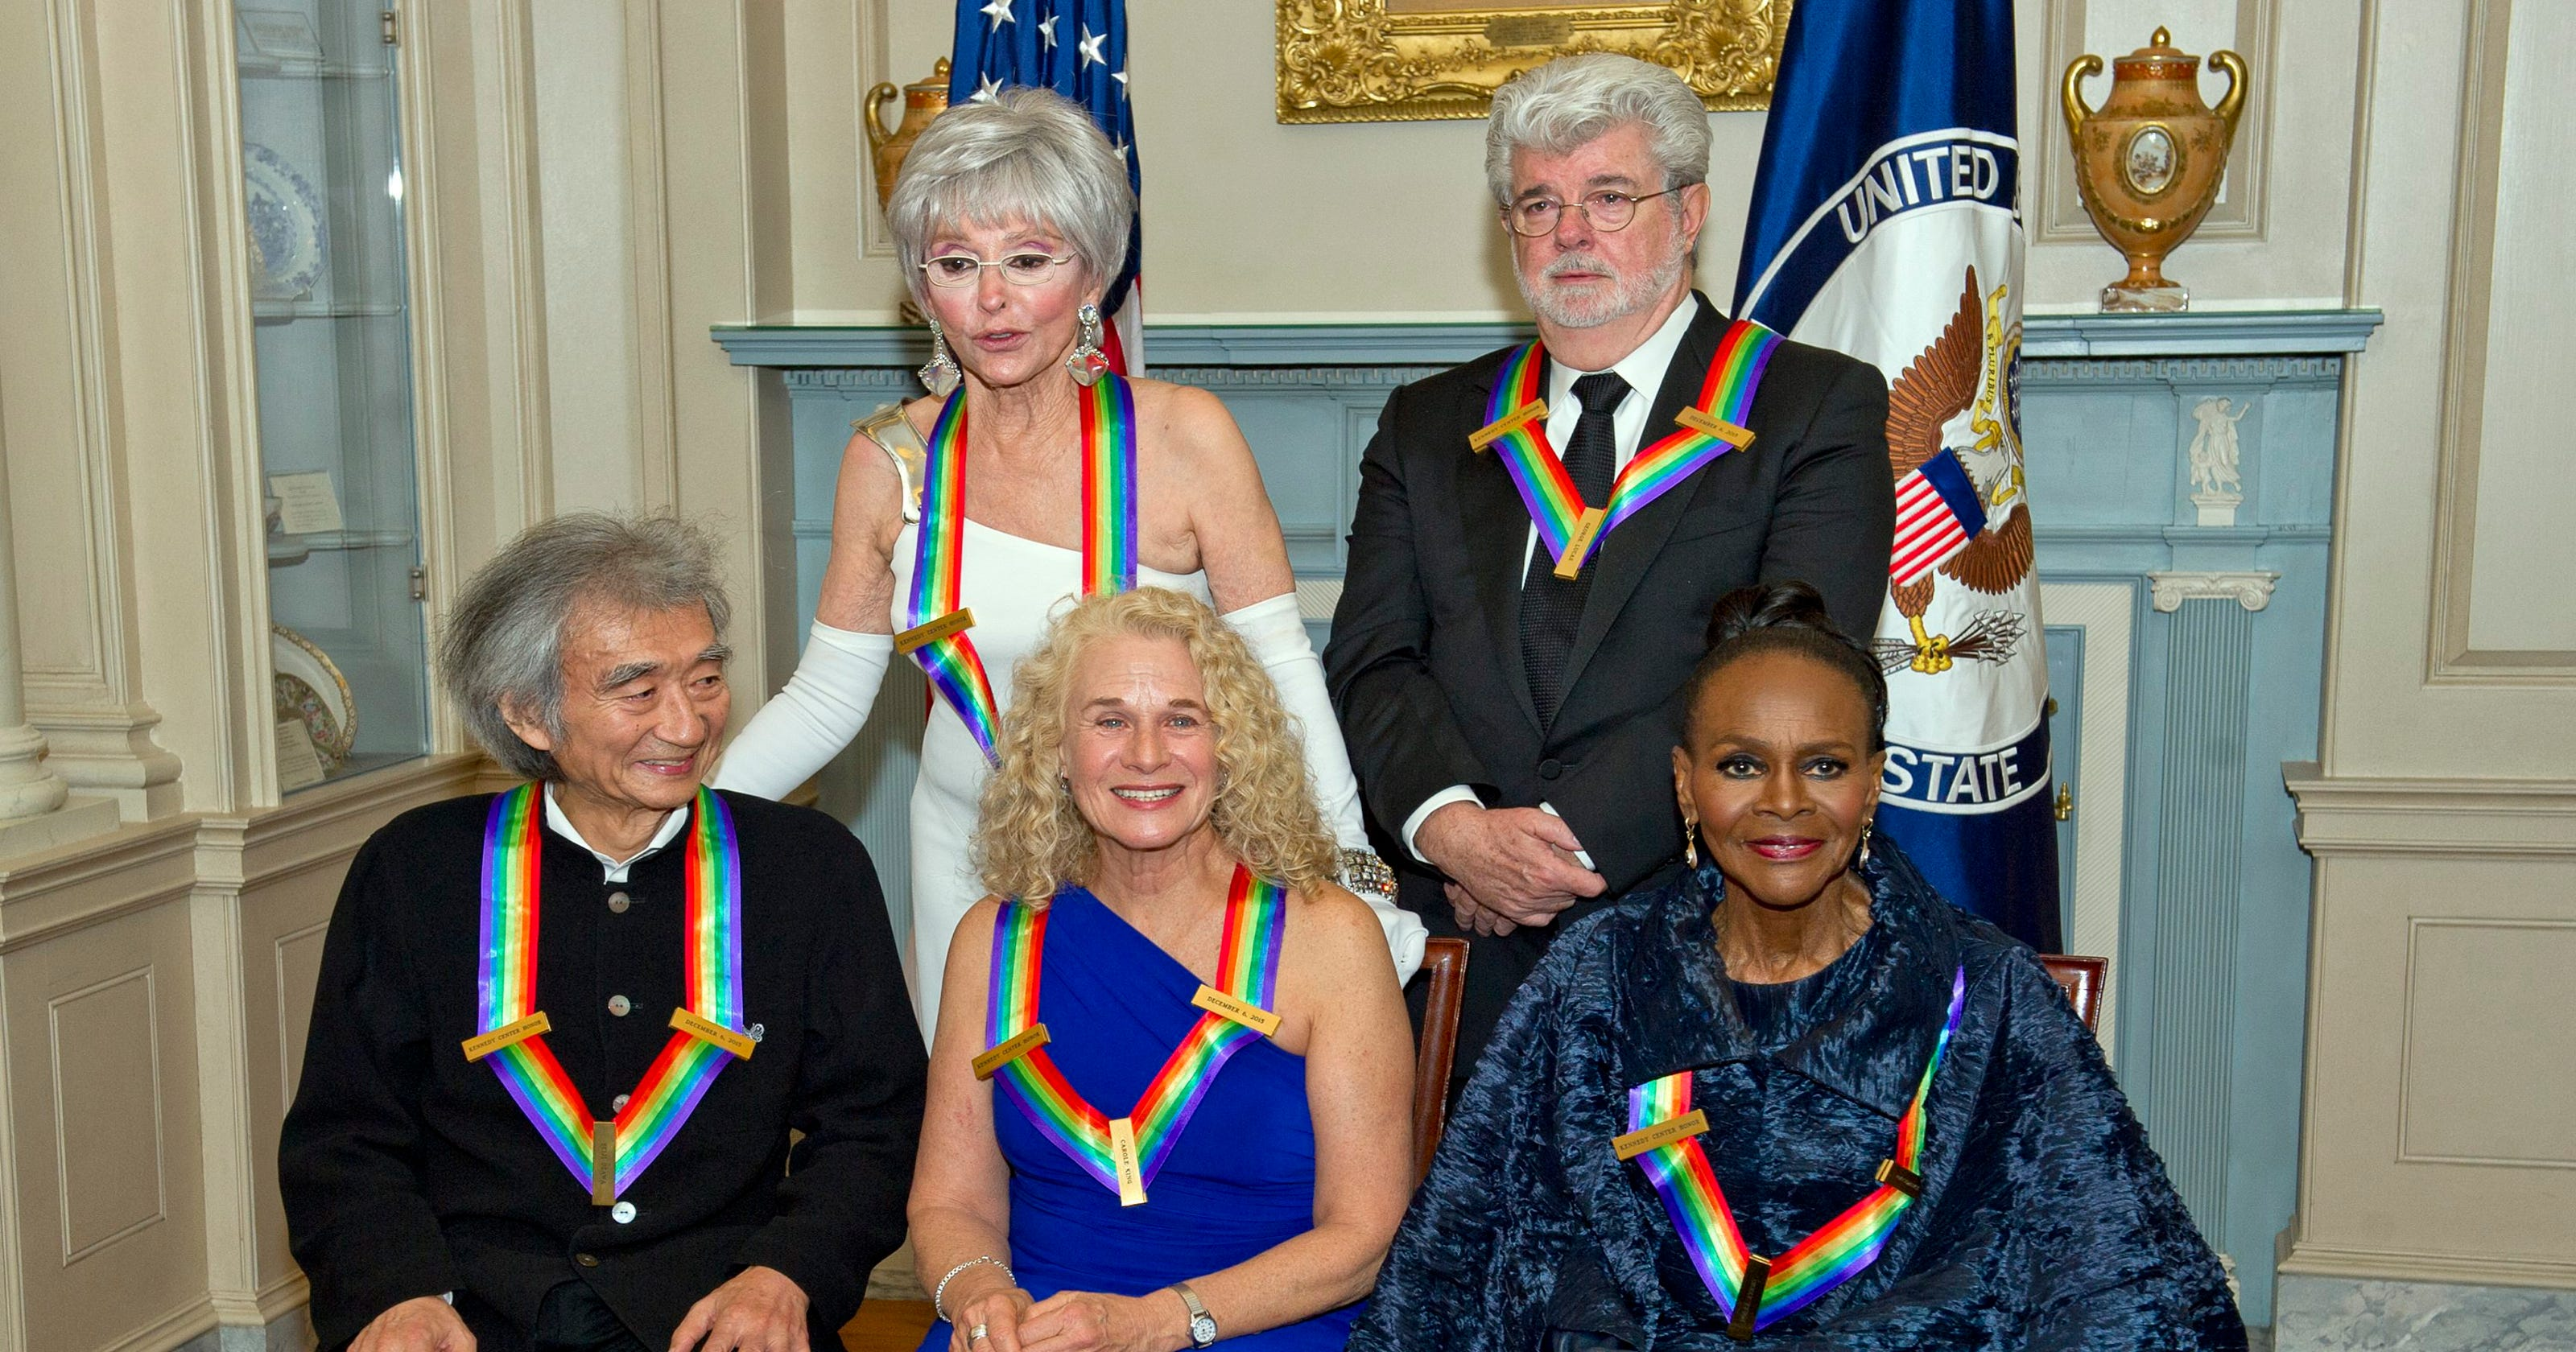 George Lucas, Cicely Tyson receive Kennedy Center Honors